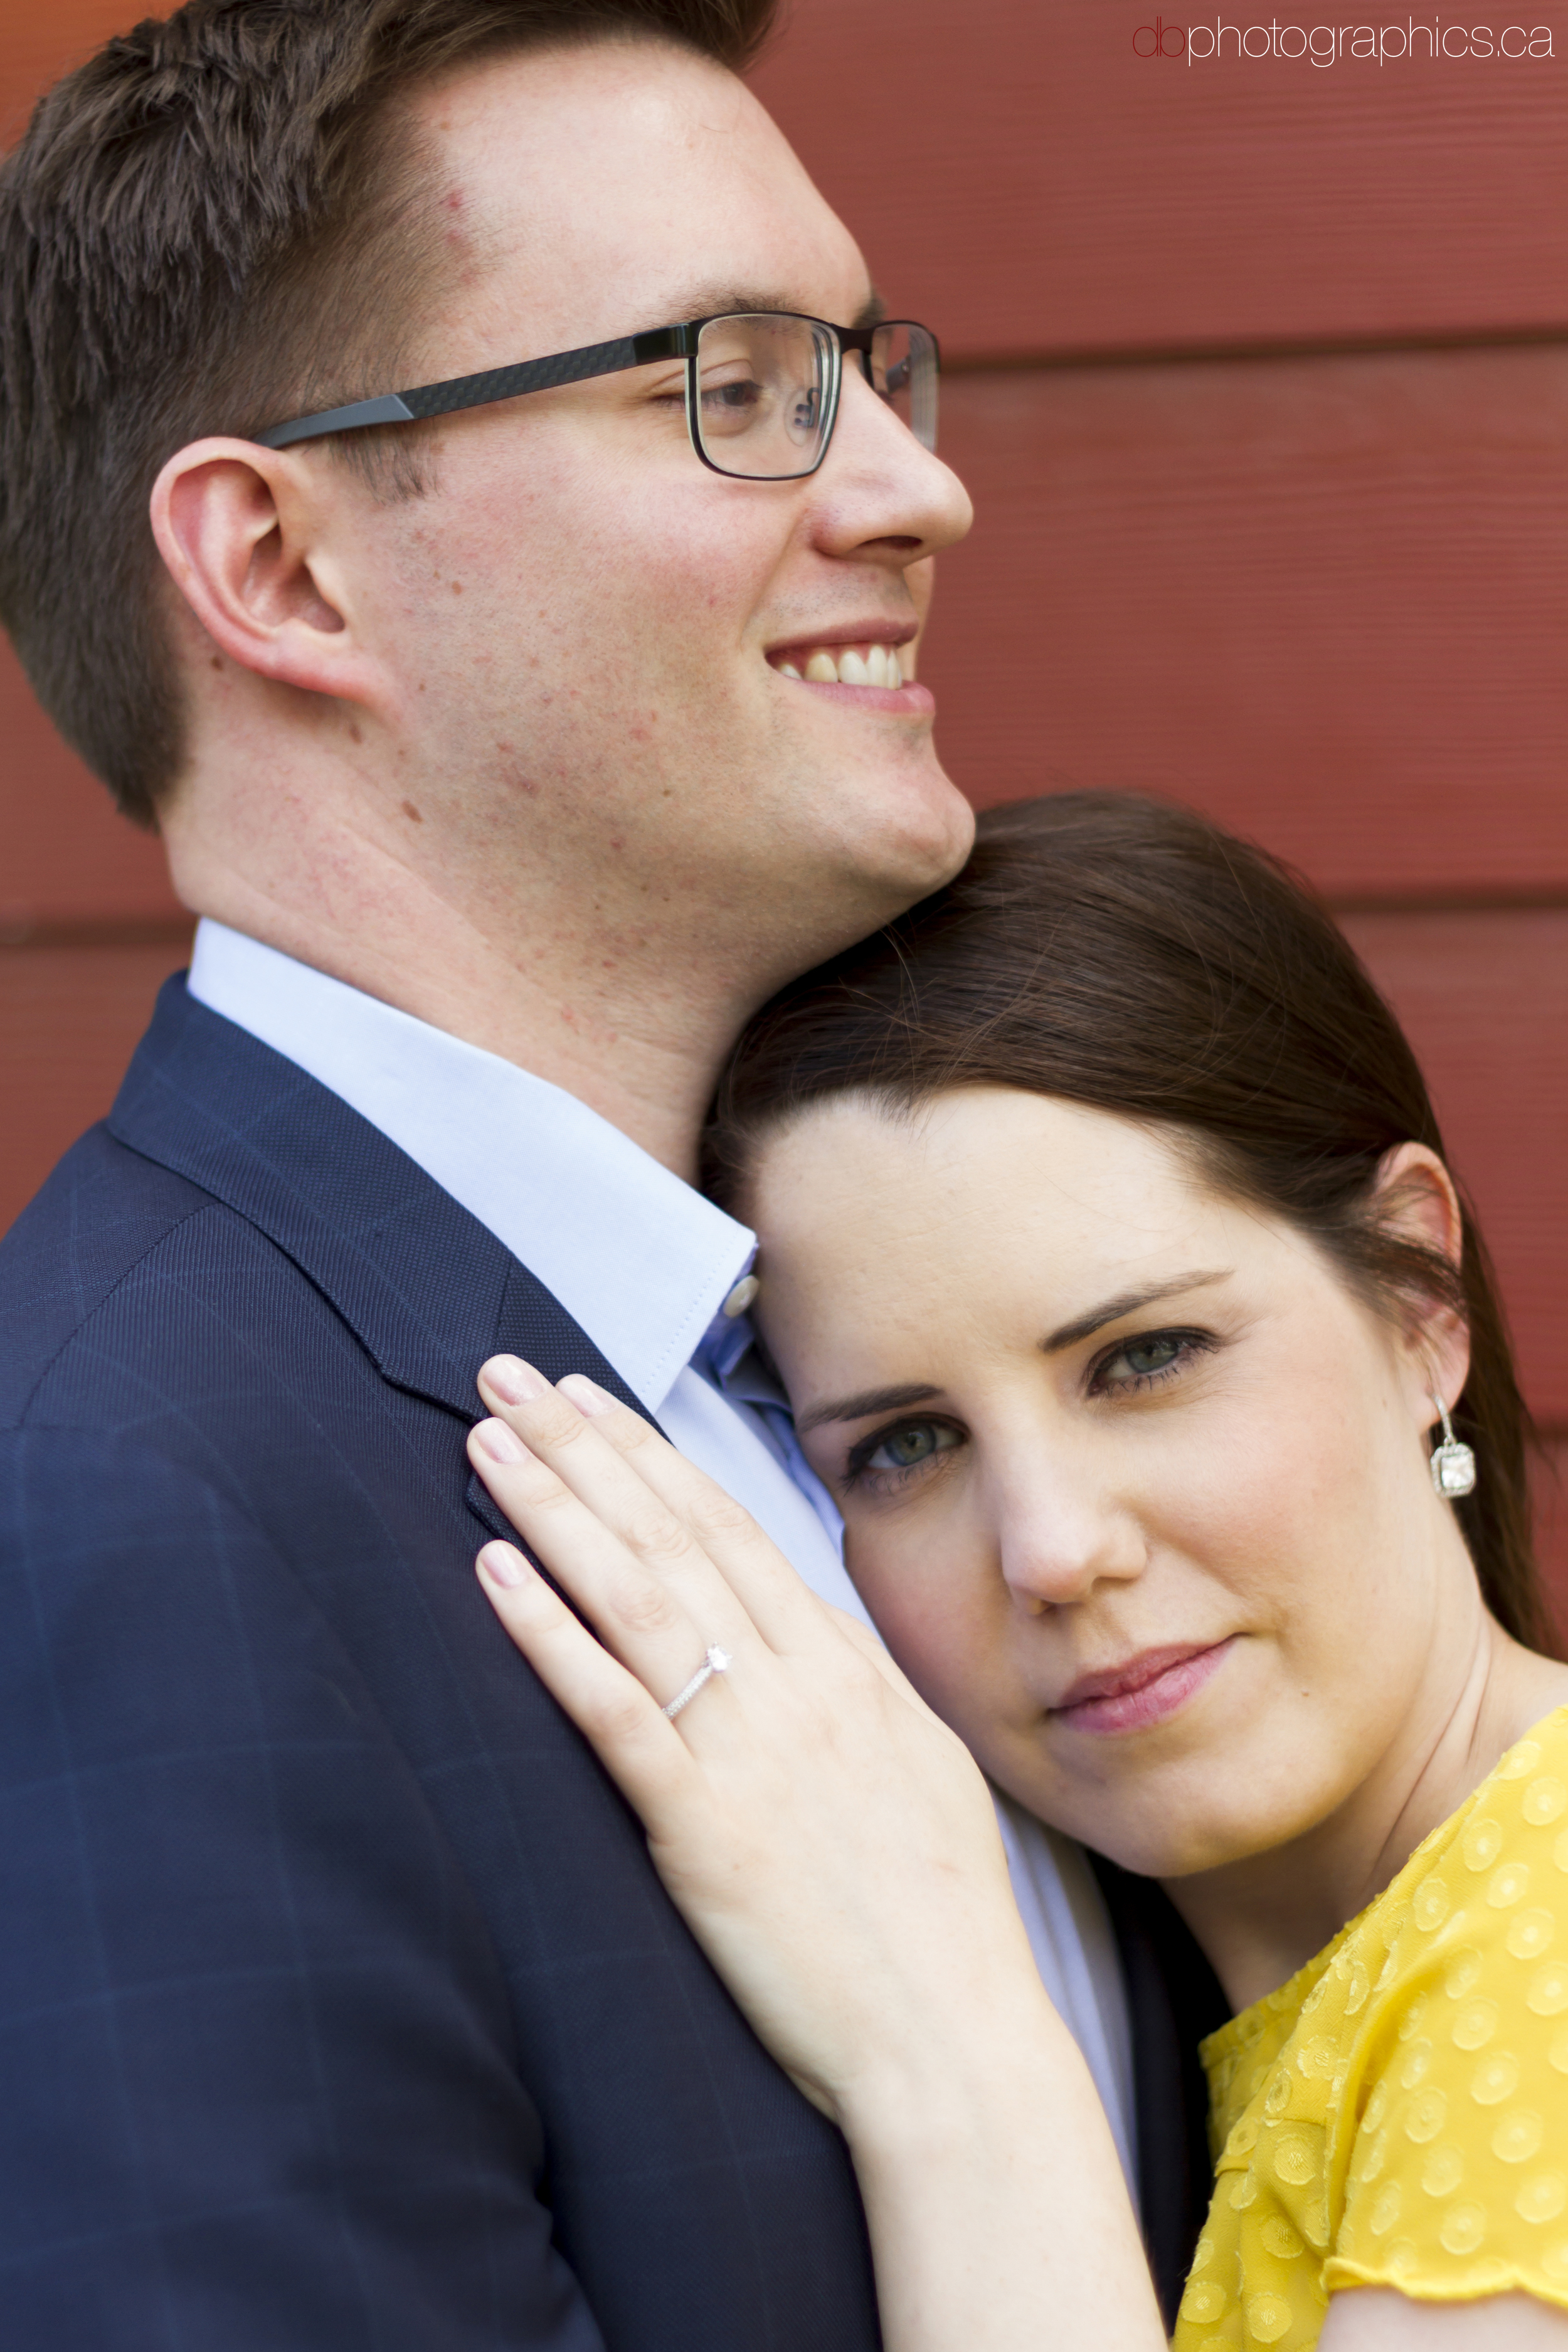 Paula-Andrew-Engagement-52-lr-blog.jpg